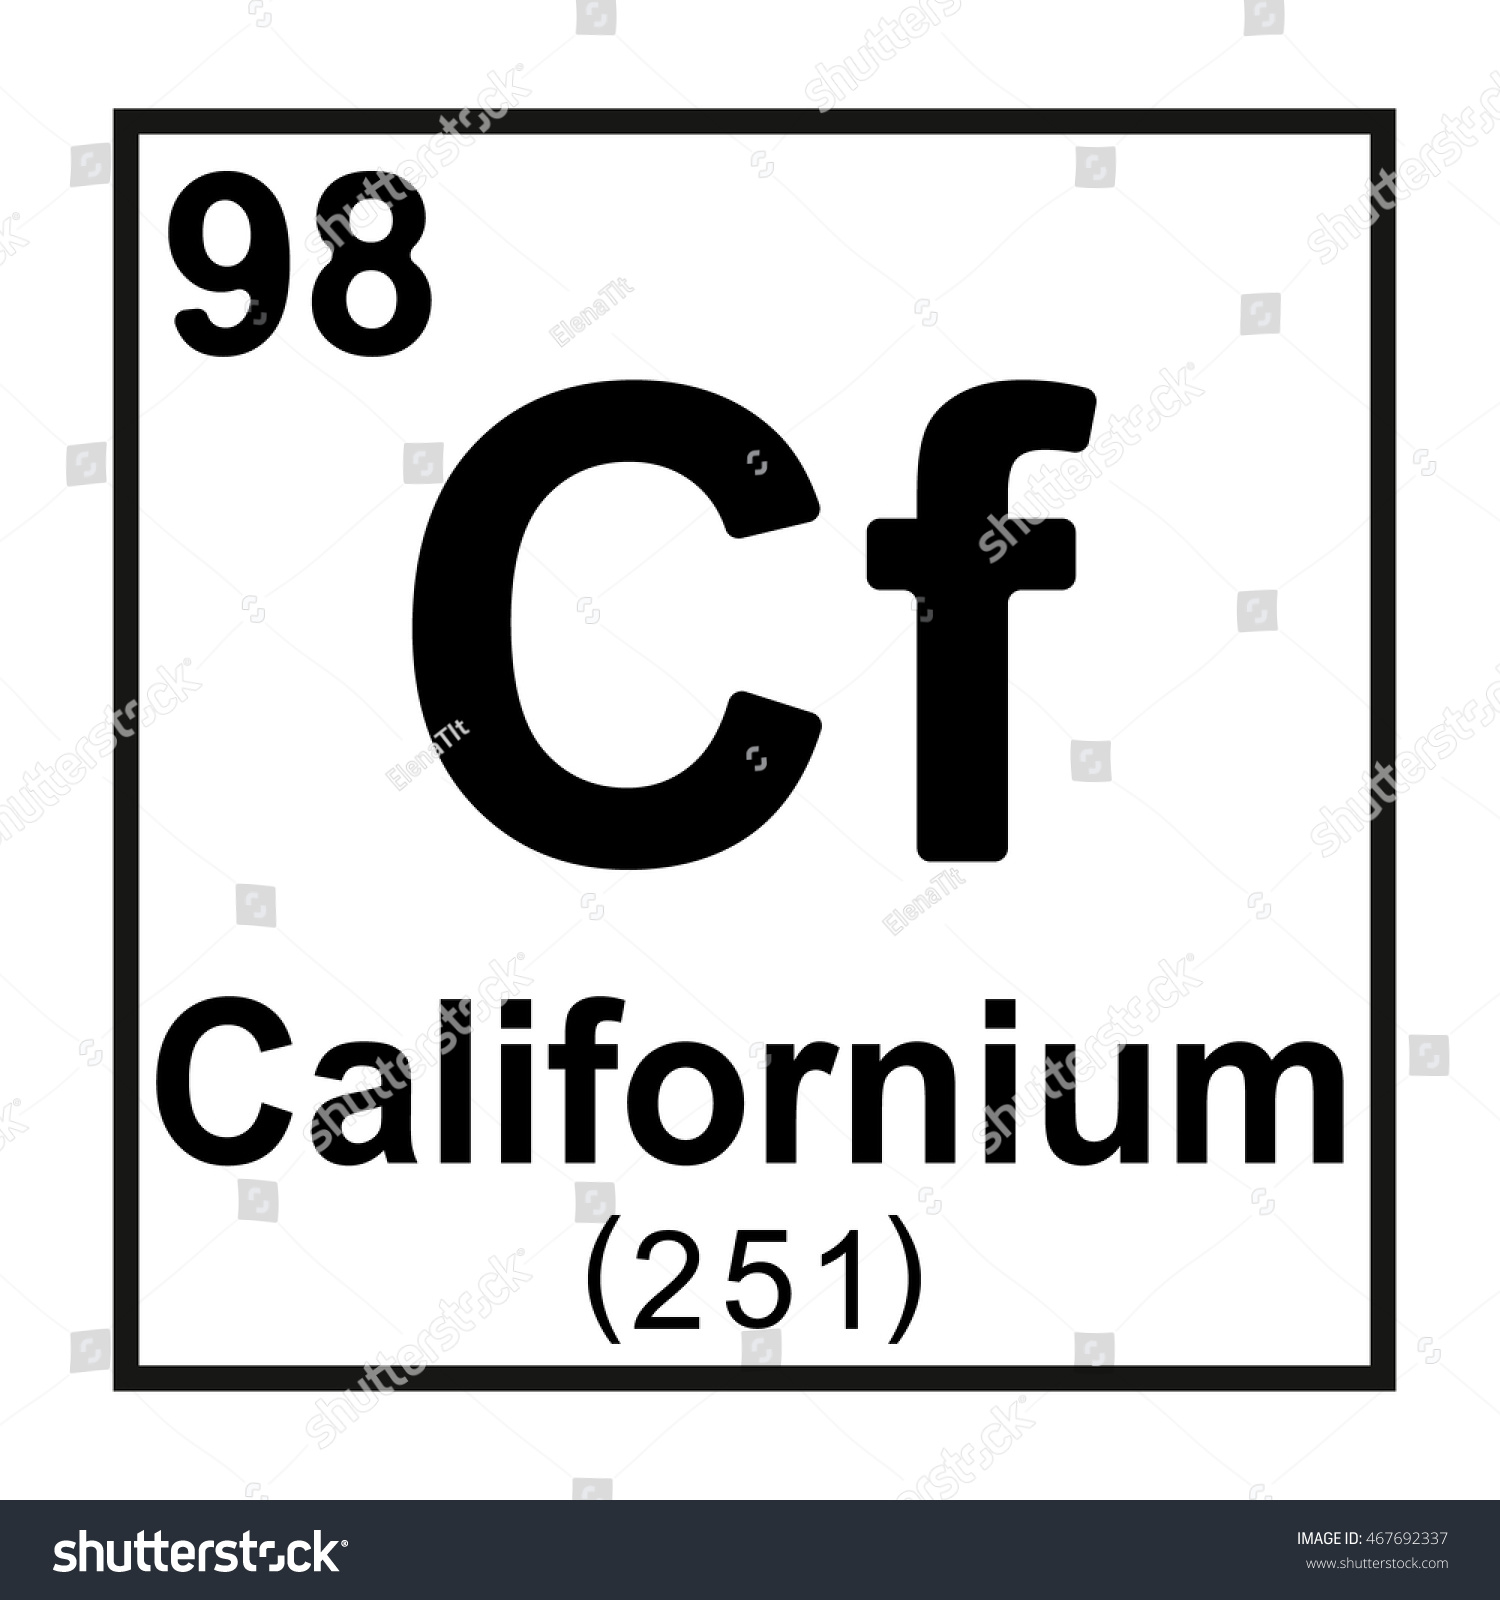 Periodic table uh gallery periodic table images californium periodic table image collections periodic table images californium periodic table image collections periodic table images gamestrikefo Image collections